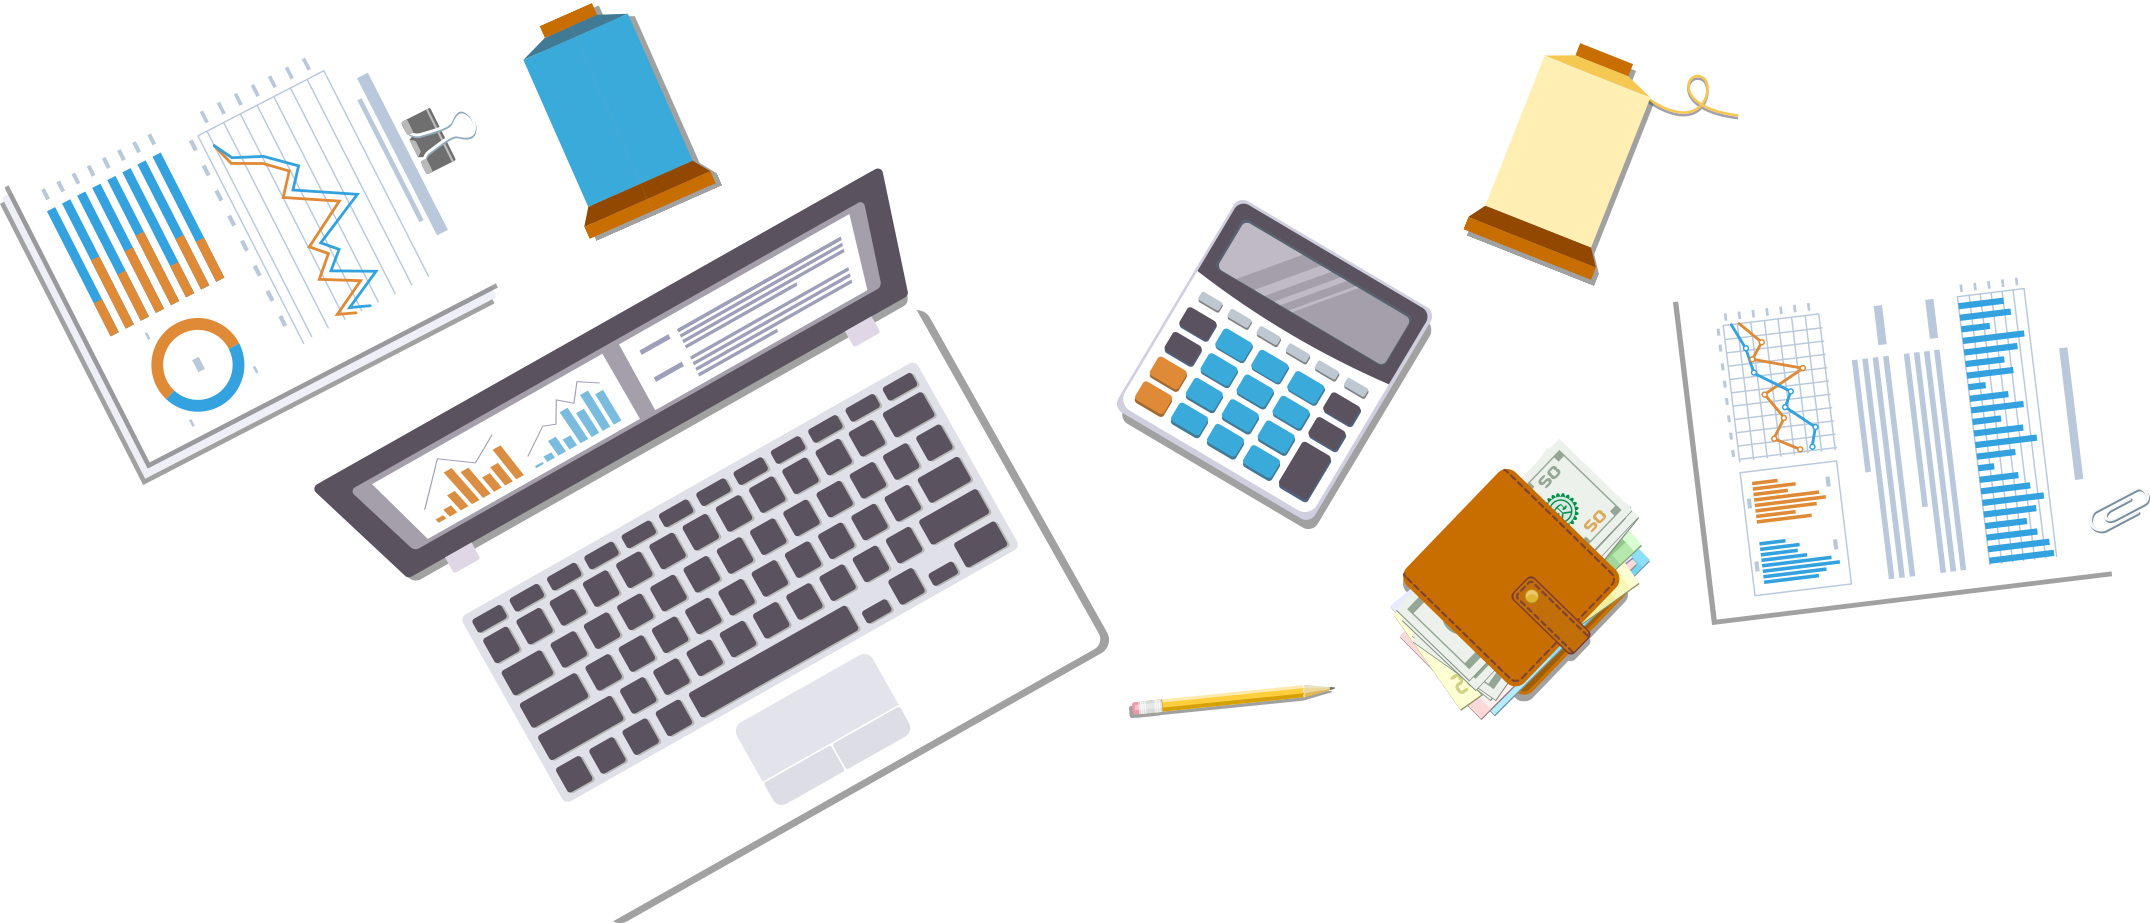 Profit calculator items background. Electronics clipart office equipments